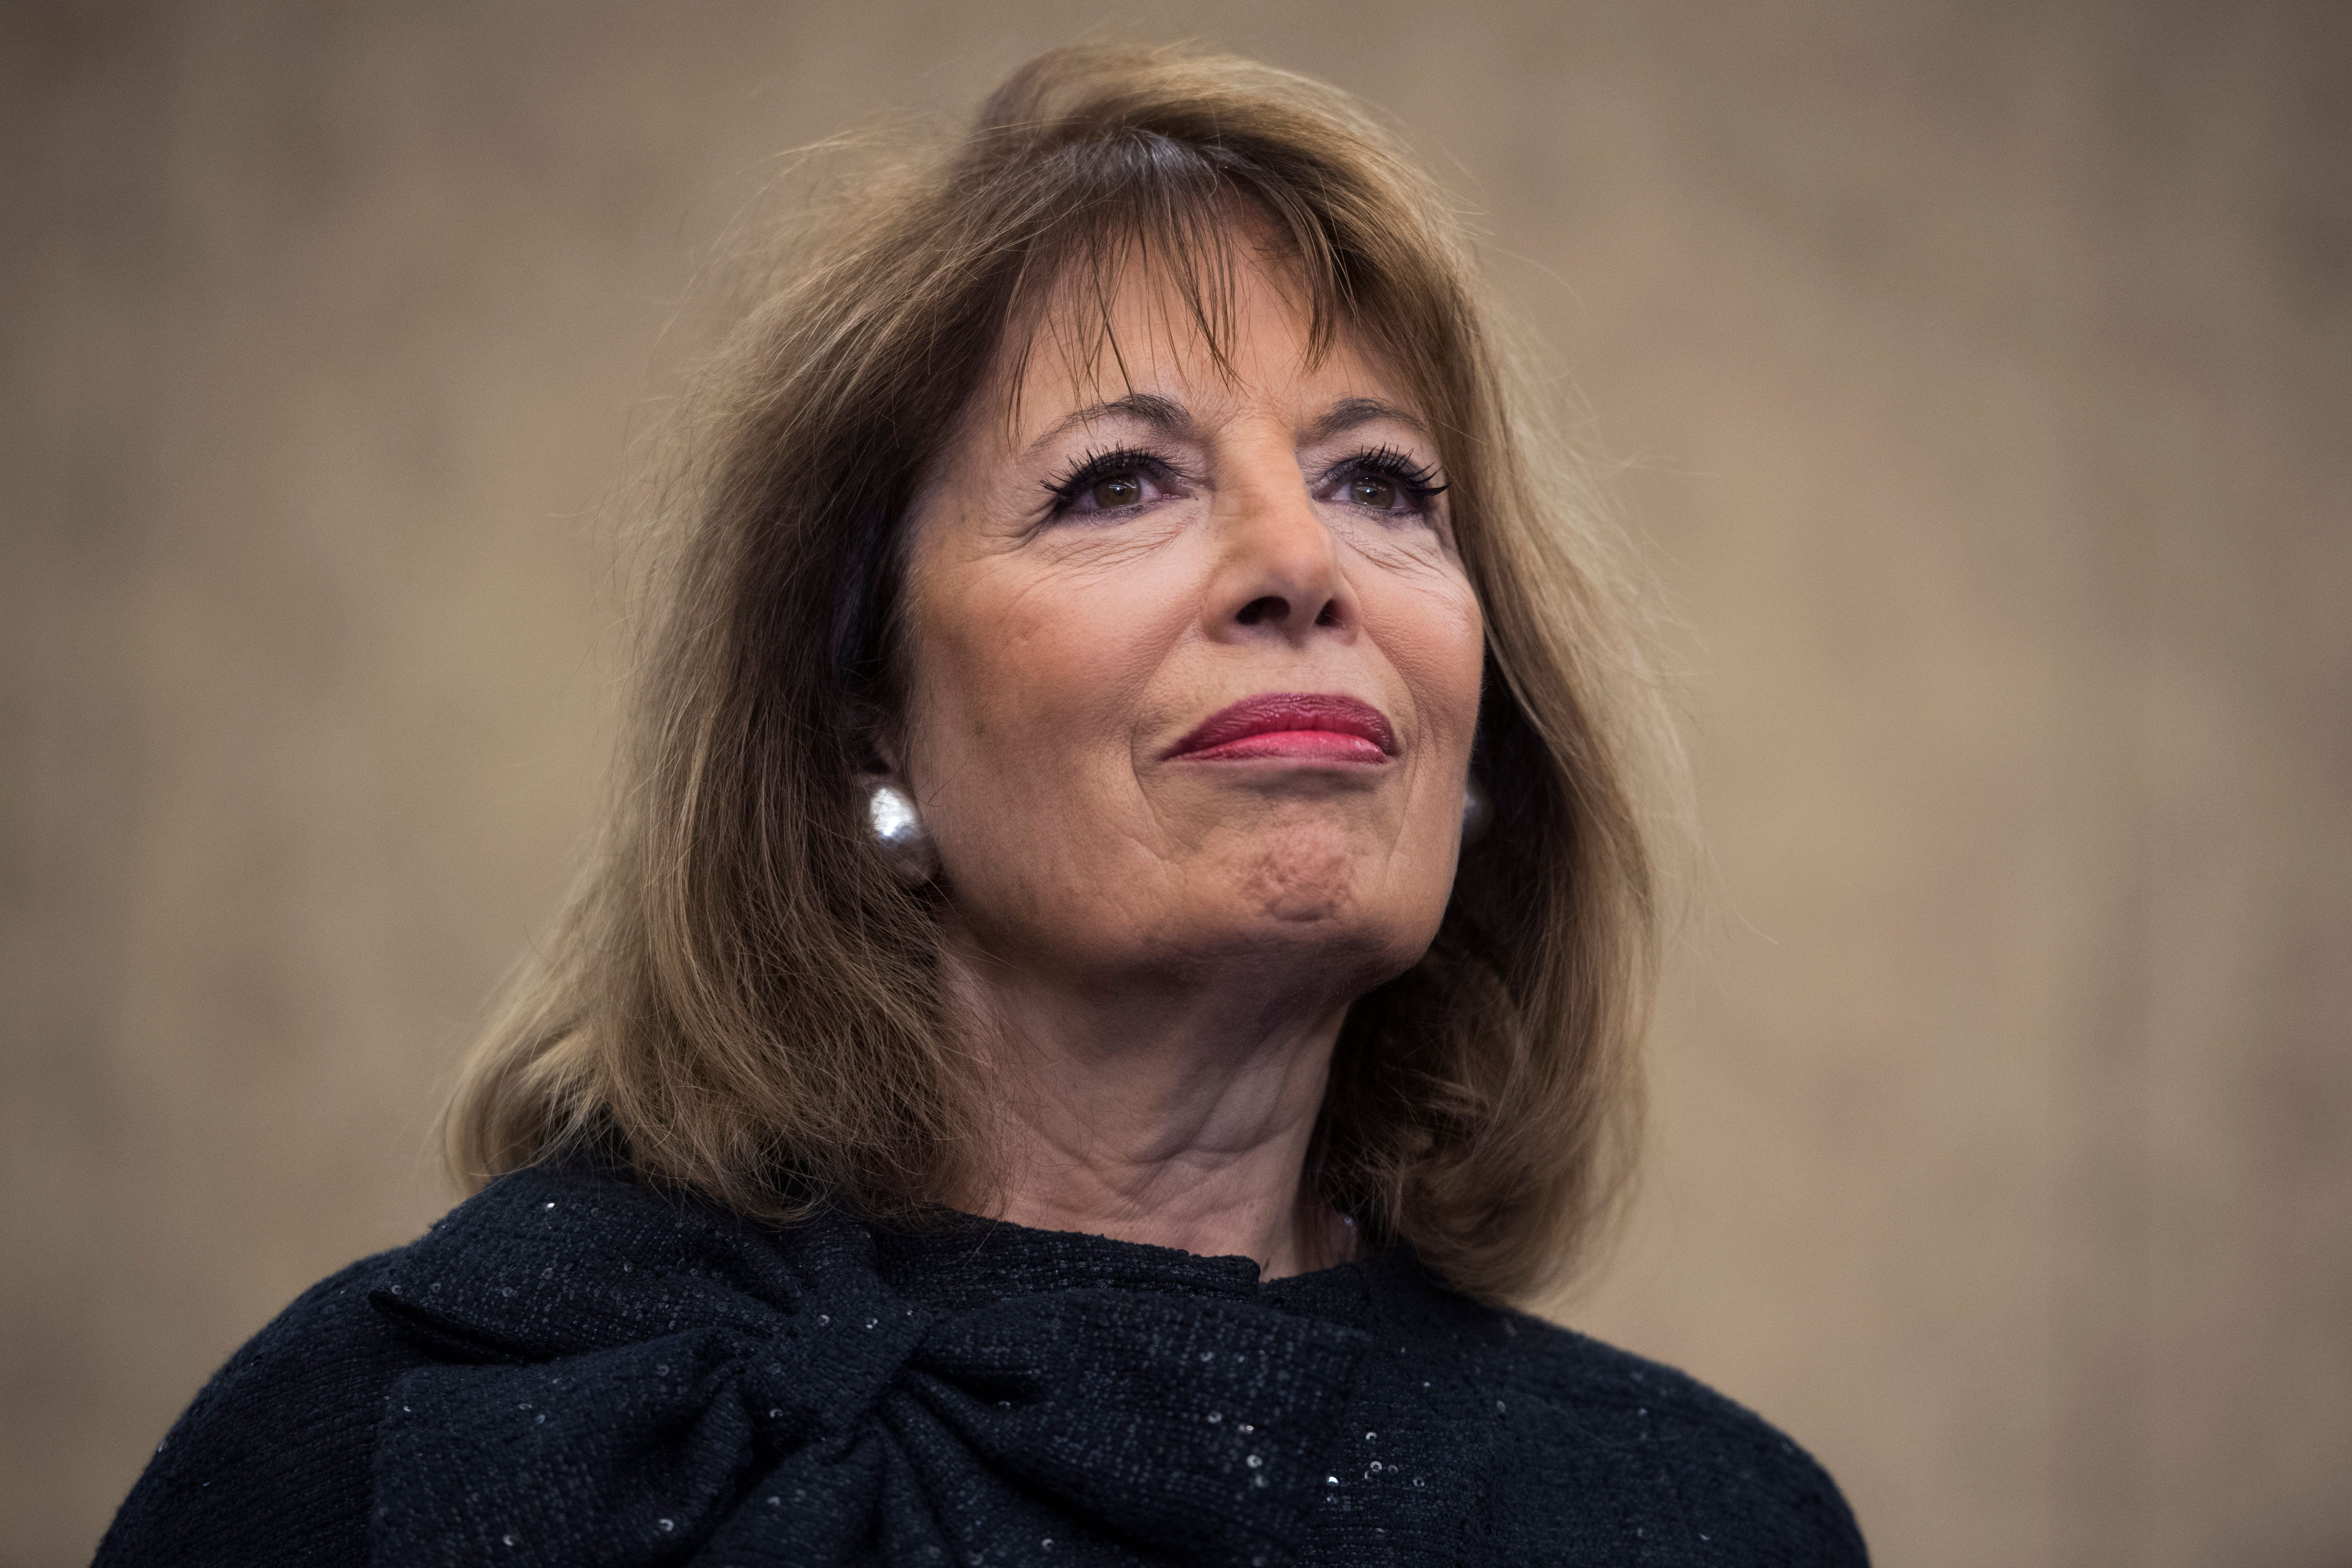 UNITED STATES - DECEMBER 20: Rep. Jackie Speier, D-Calif., attends a news conference in the Capitol on December 20, 2017, on CHIP (Children's Health Insurance Program), which has yet to be reauthorized. The Democratic Women's Working Group is opposed to proposed offsets that would take from other health care programs, while the GOP tax plan gives tax breaks to corporations. (Photo By Tom Williams/CQ Roll Call)